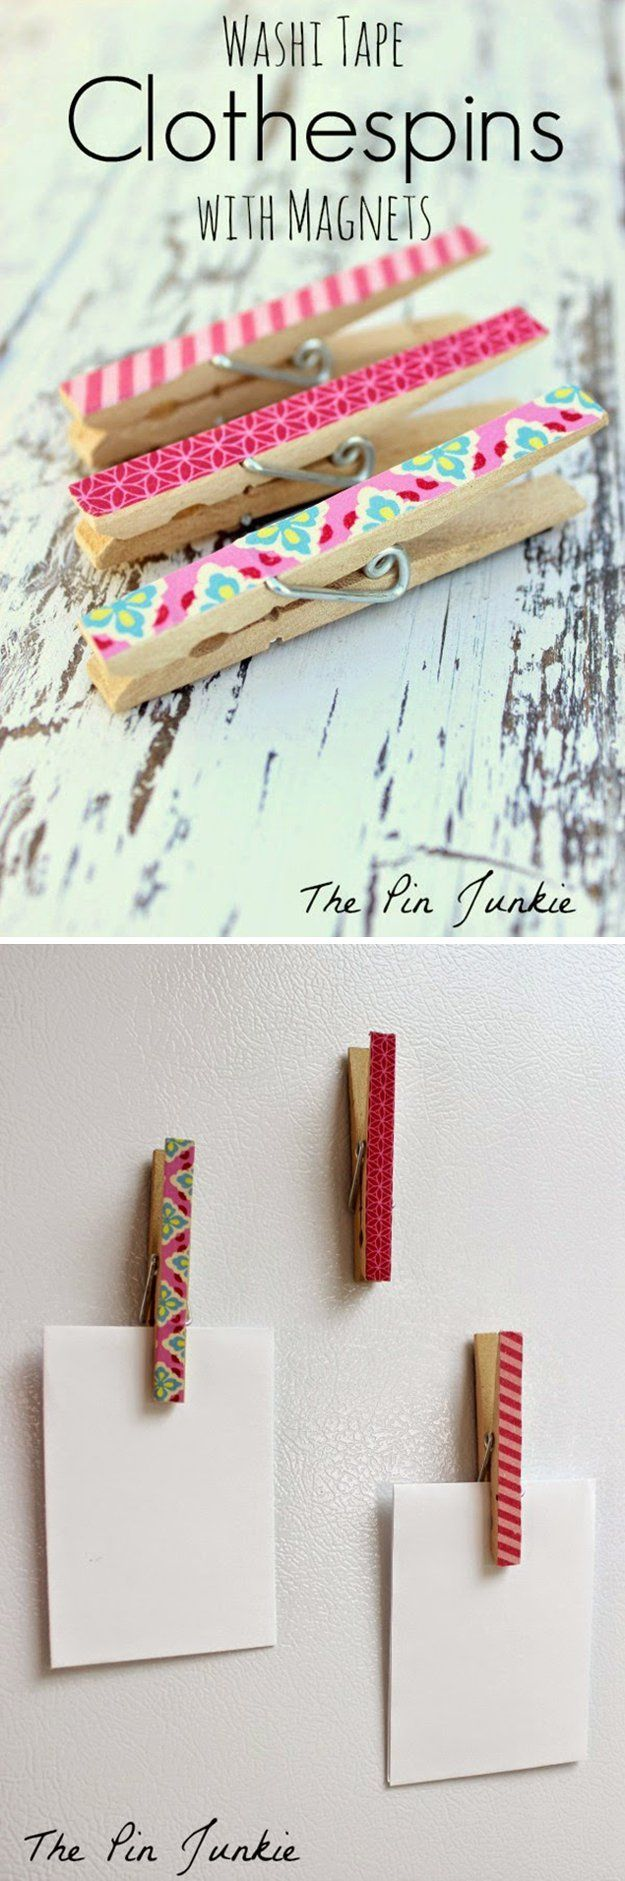 100 Creative Ways to Use Washi Tape | DIY CRAFTS                                                                                                                                                                                 More